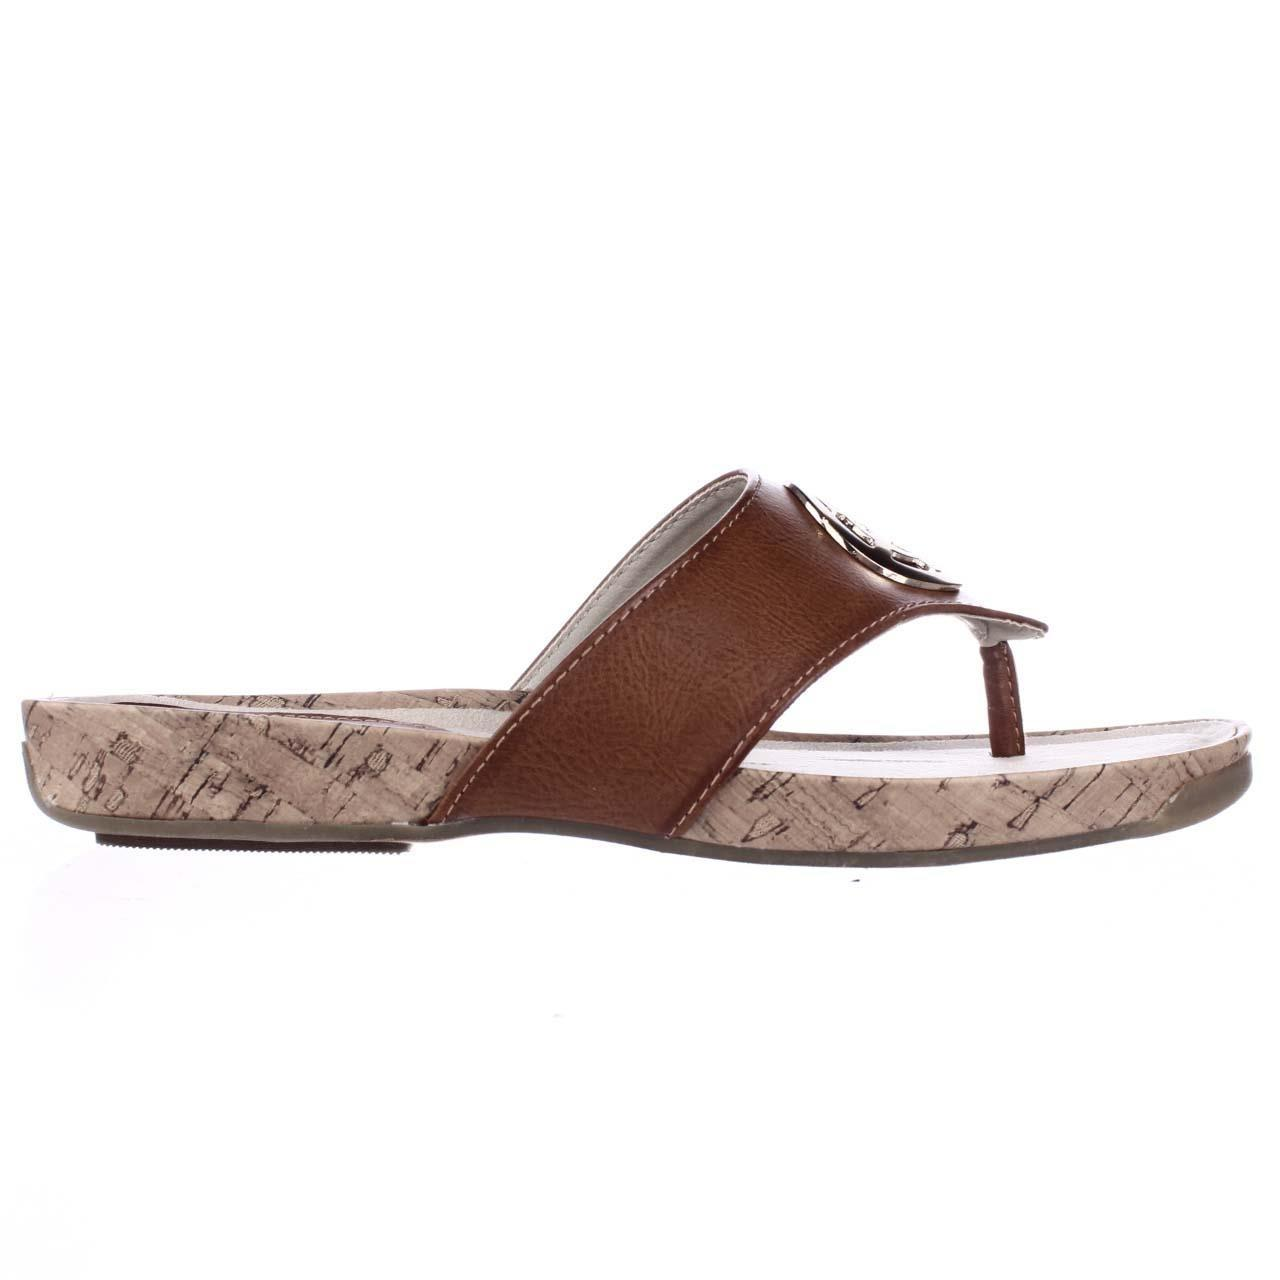 Lyst Rialto Calista Flat Thong Sandals In Brown